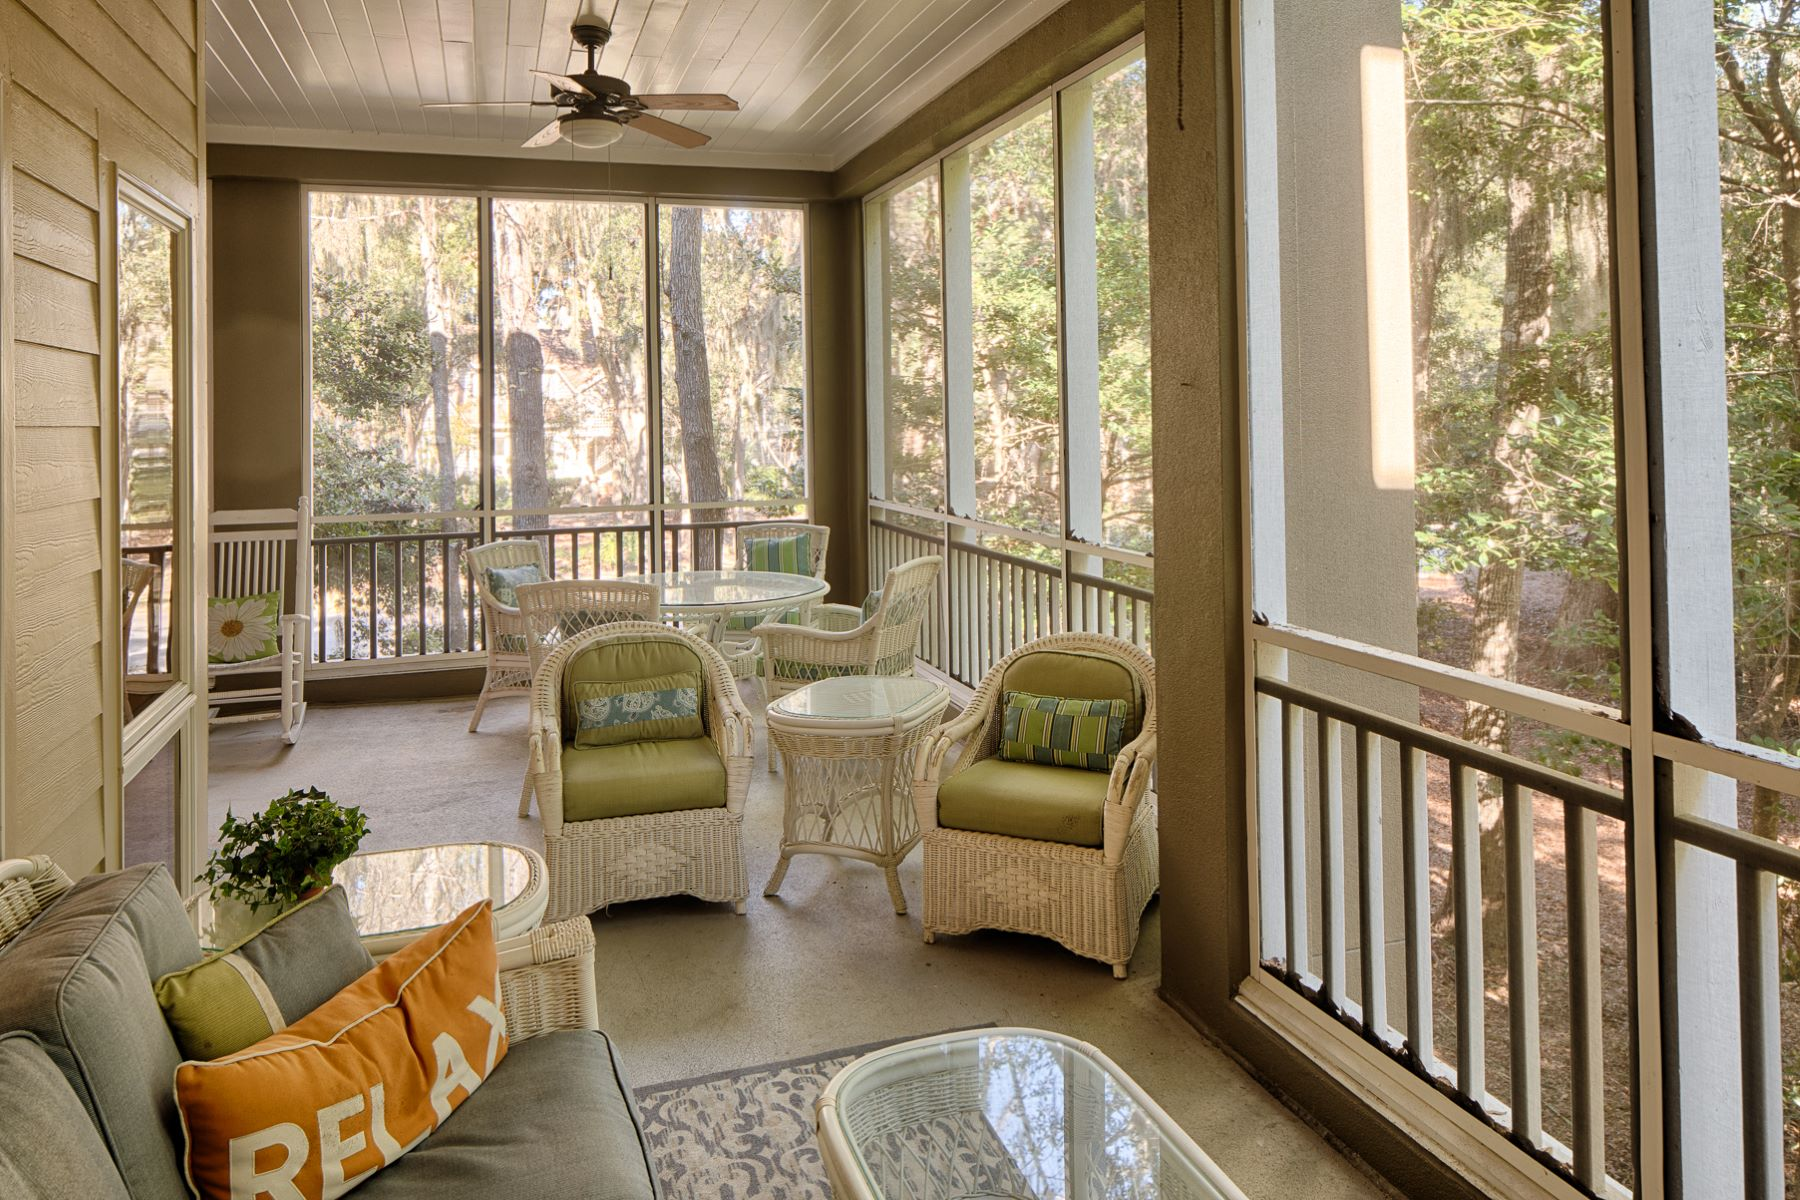 Condominiums for Sale at 89 Ocean Lane Unit # 8117 Hilton Head Island, South Carolina 29928 United States